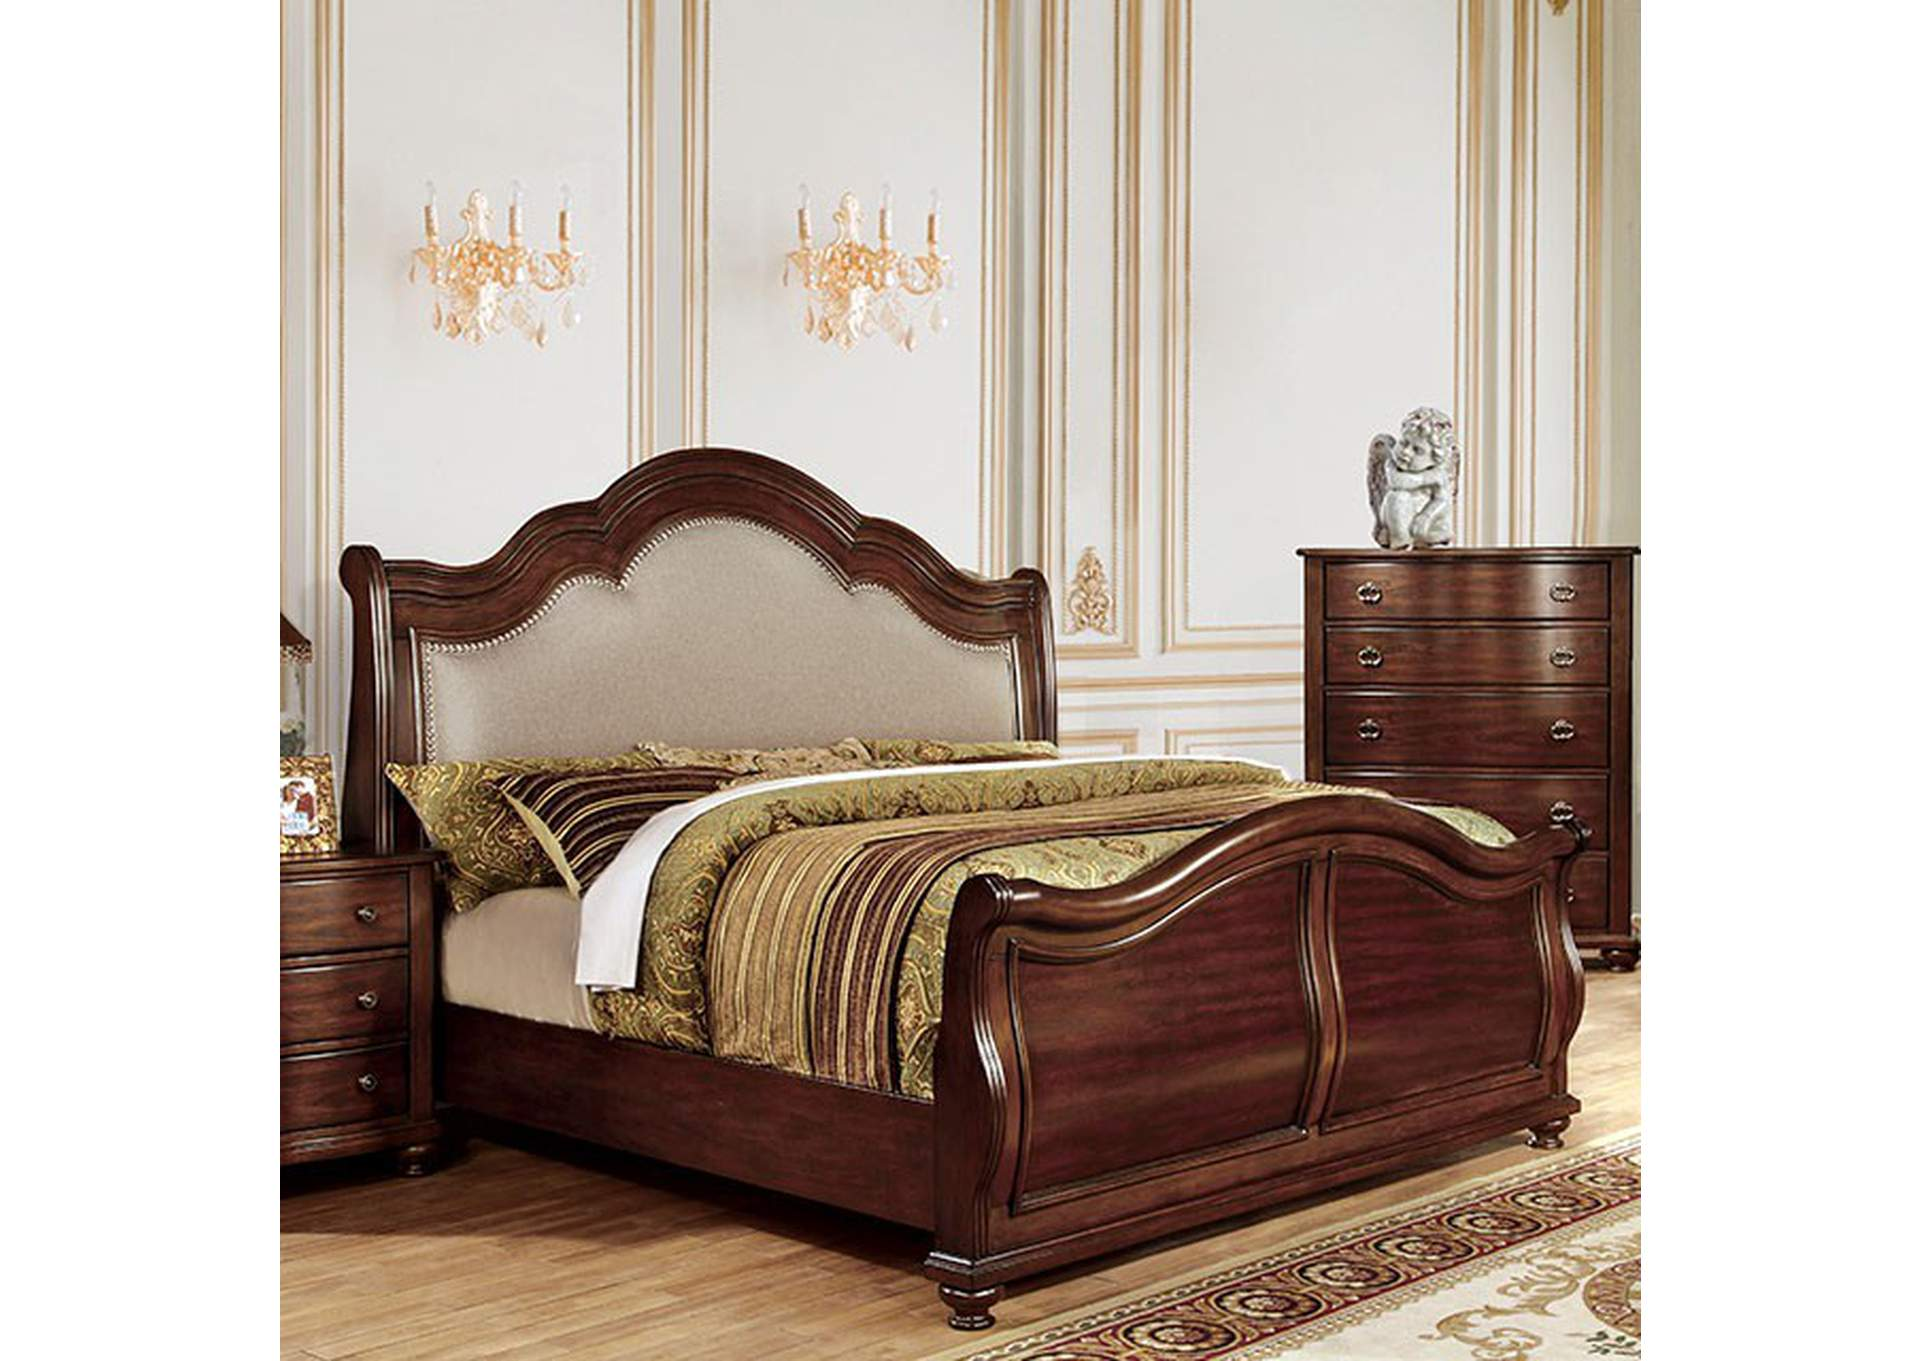 Bellavista Queen Upholstered Sleigh Bed,Furniture of America